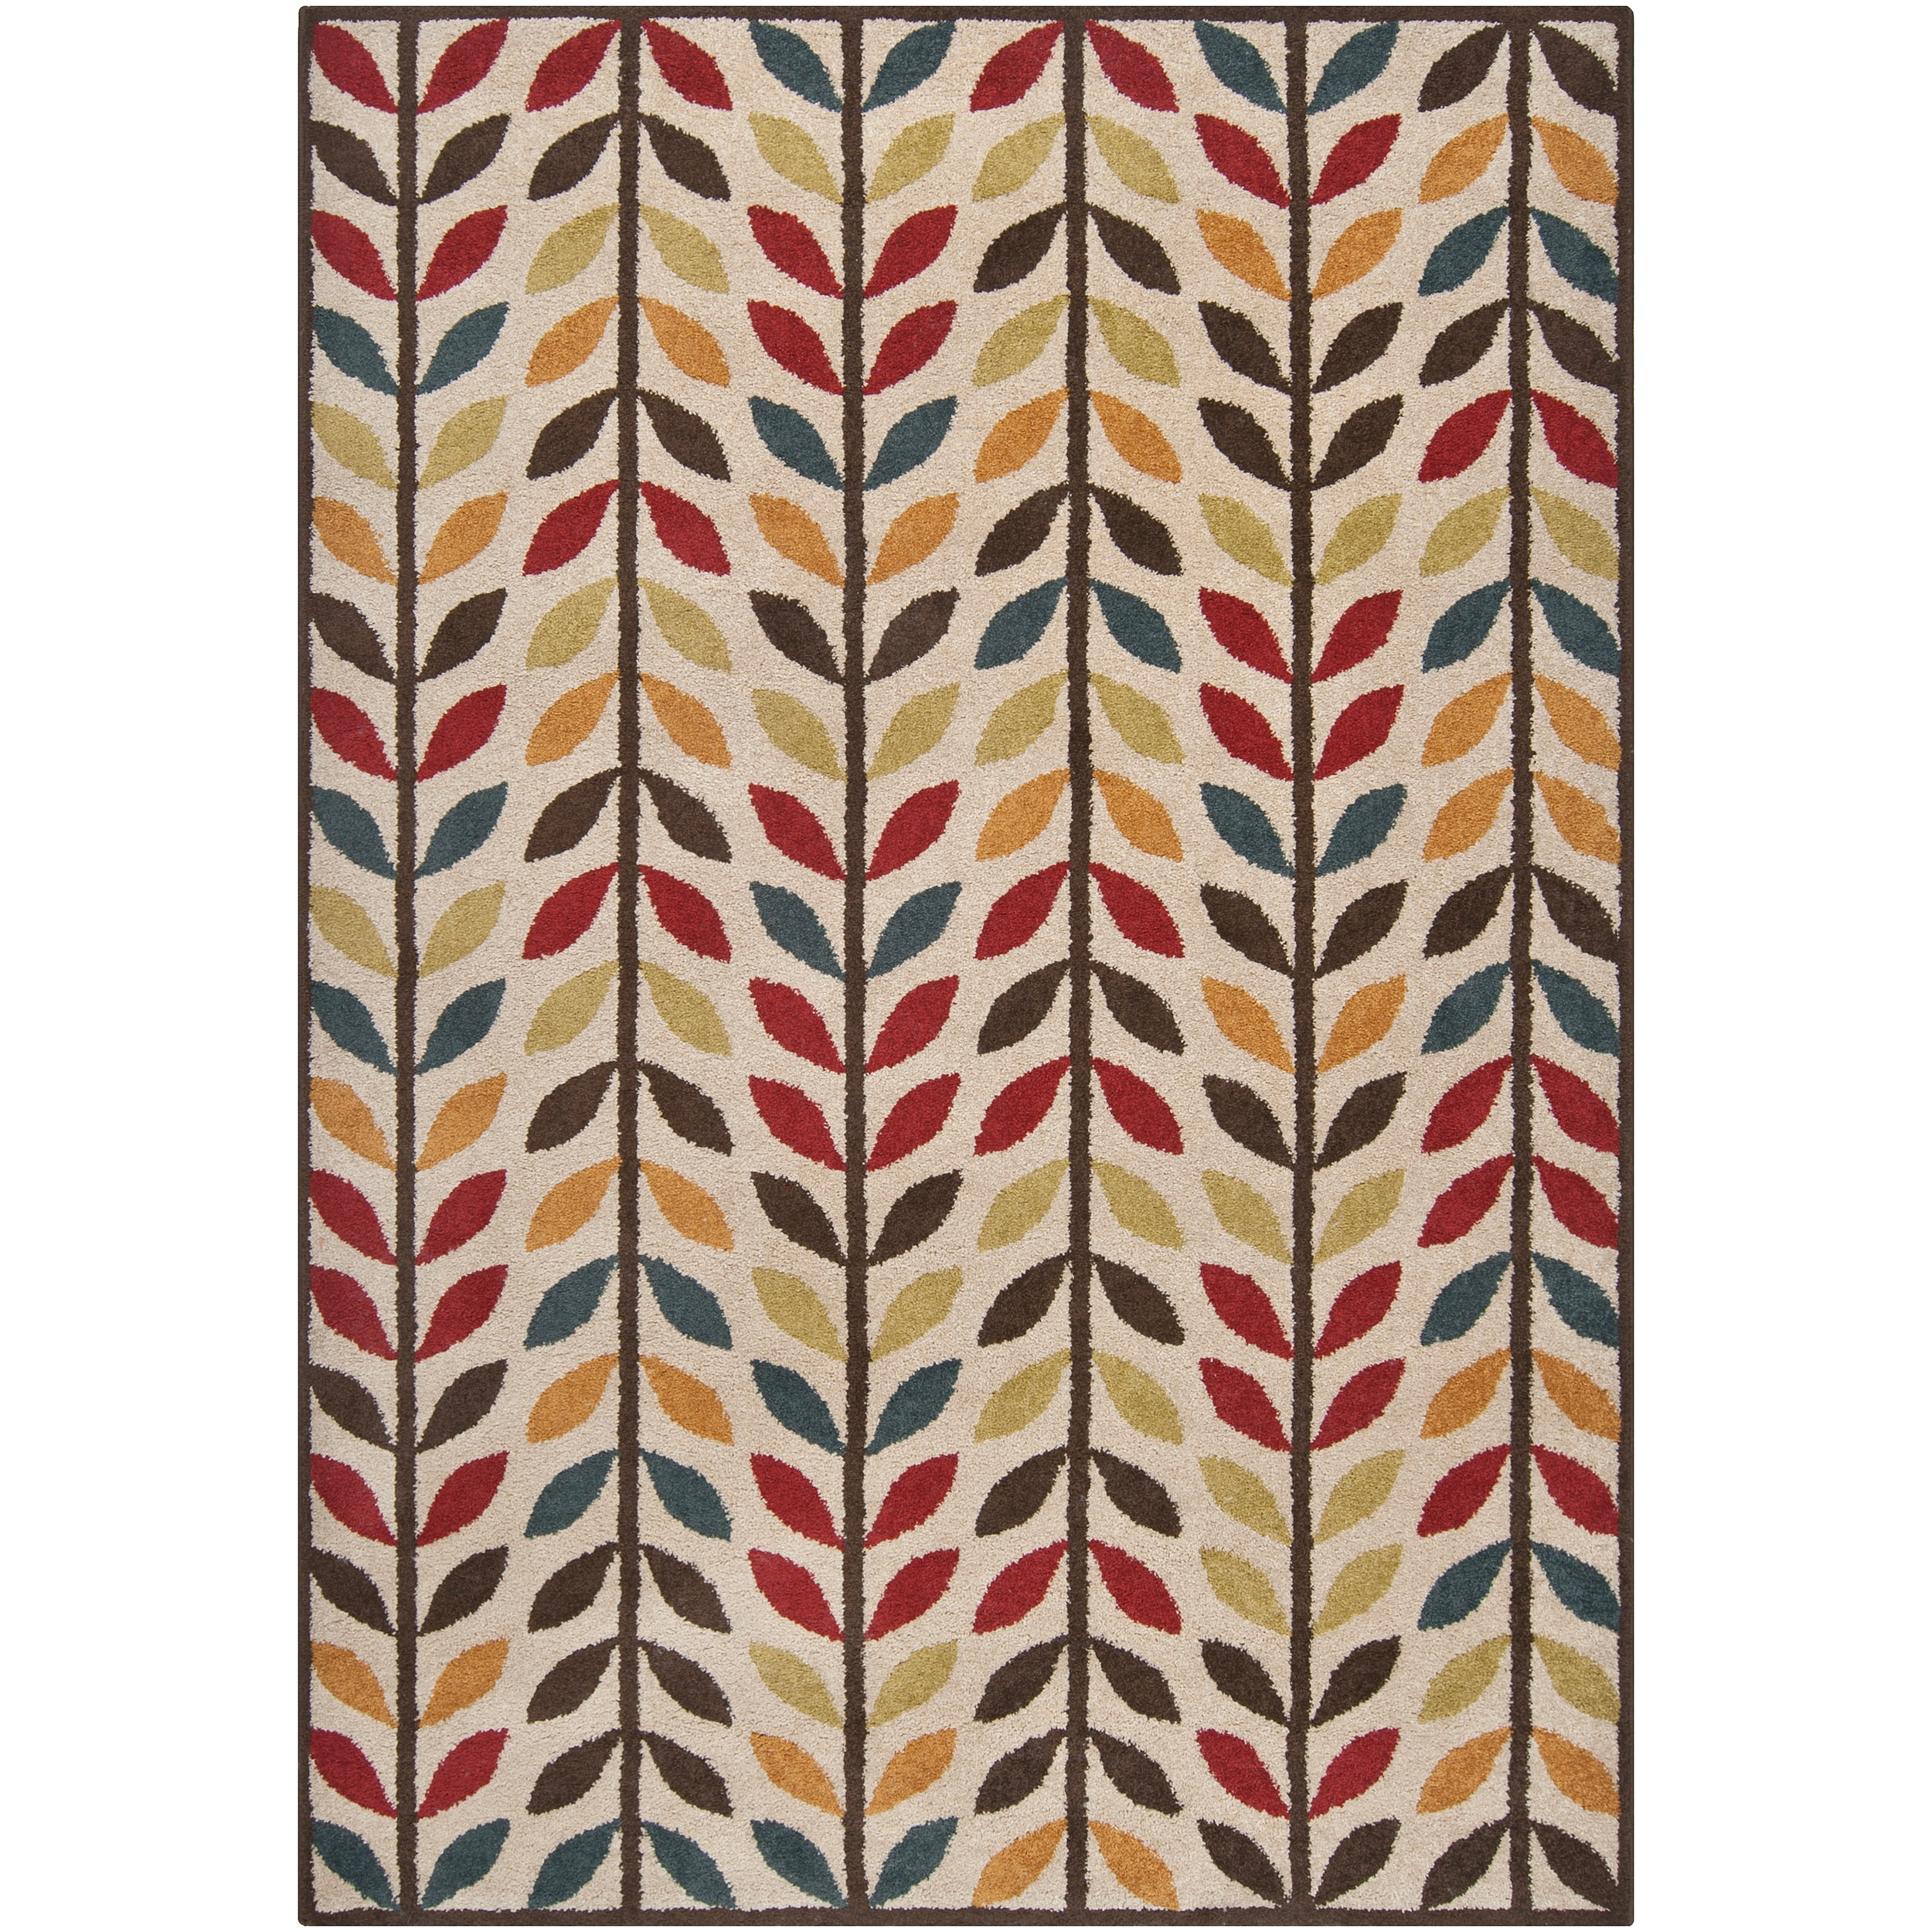 Meticulously Woven Contemporary Brown/Red Floral Frome Rug (7'10X10')